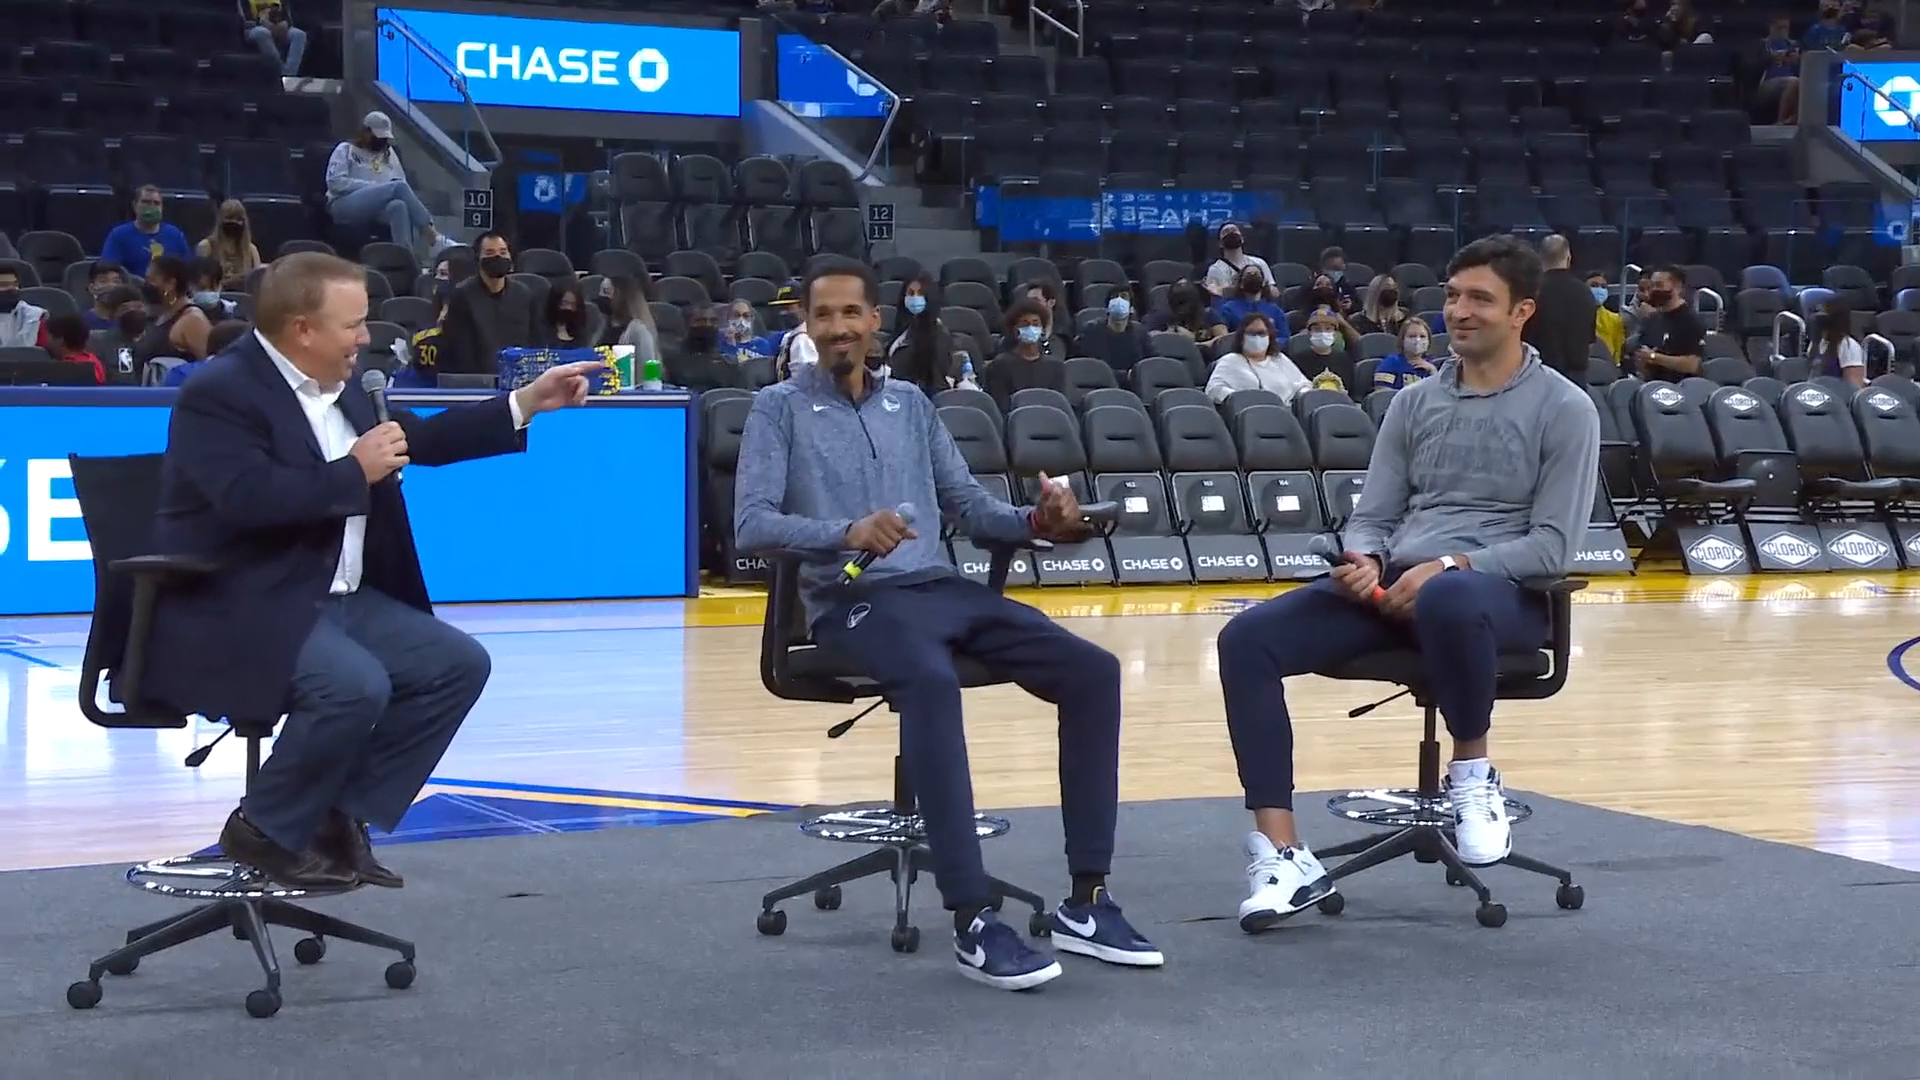 Warriors Open Practice: Q+A with Shaun Livingston and Zaza Pachulia